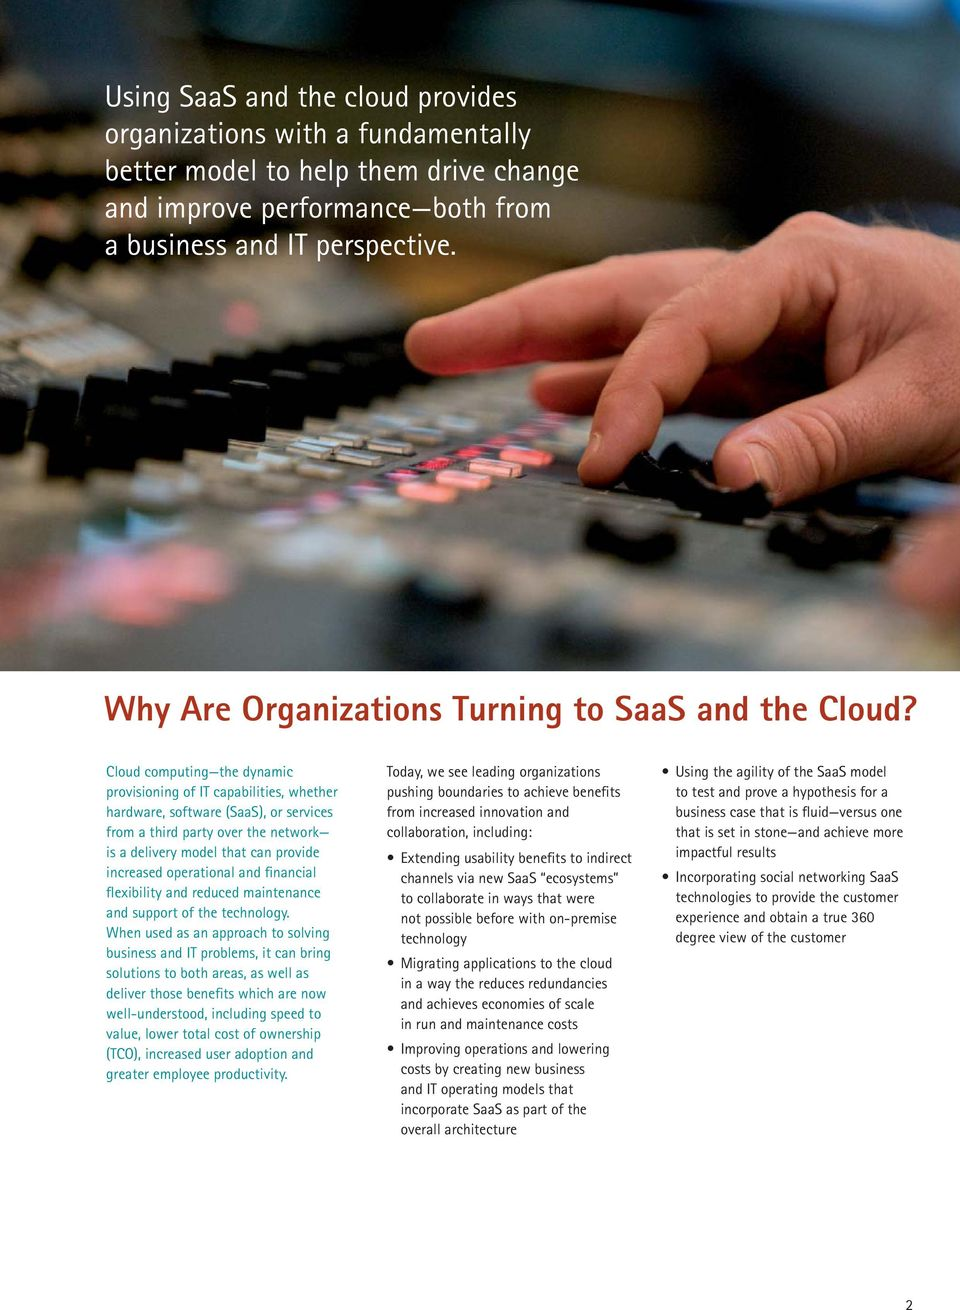 Cloud computing the dynamic provisioning of IT capabilities, whether hardware, software (SaaS), or services from a third party over the network is a delivery model that can provide increased